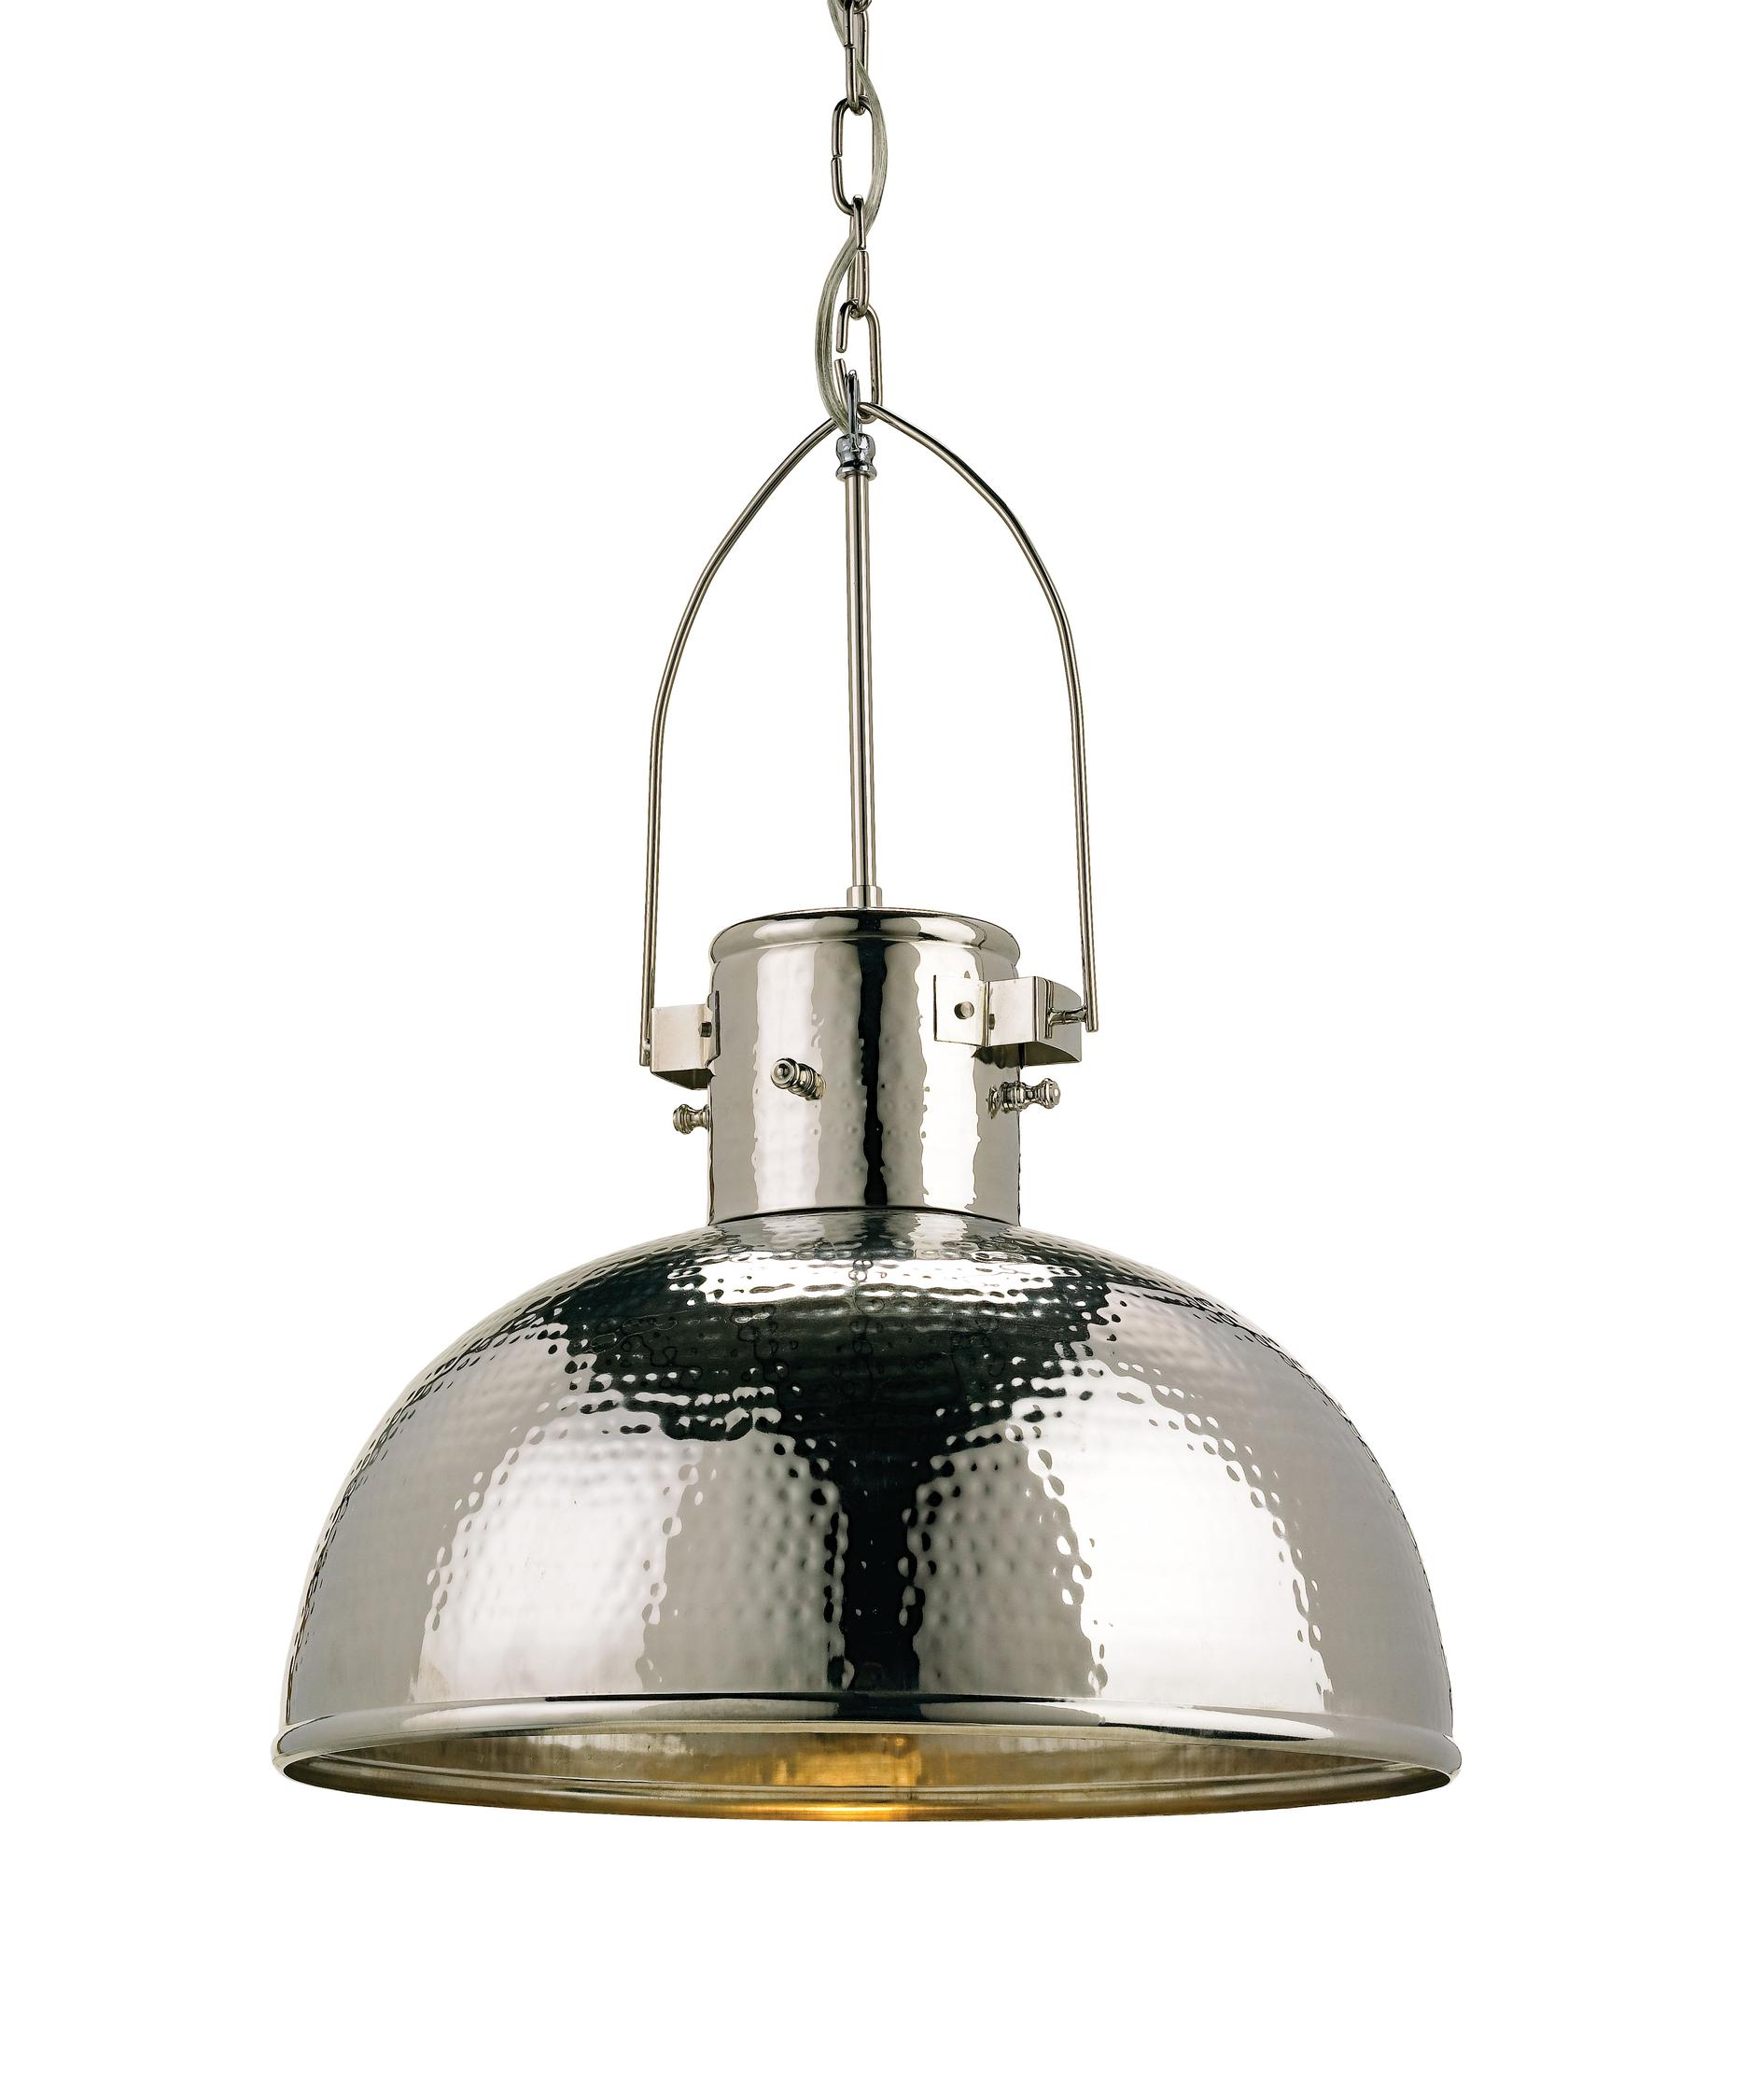 currey and company lighting fixtures. shown in nickel finish currey and company lighting fixtures c